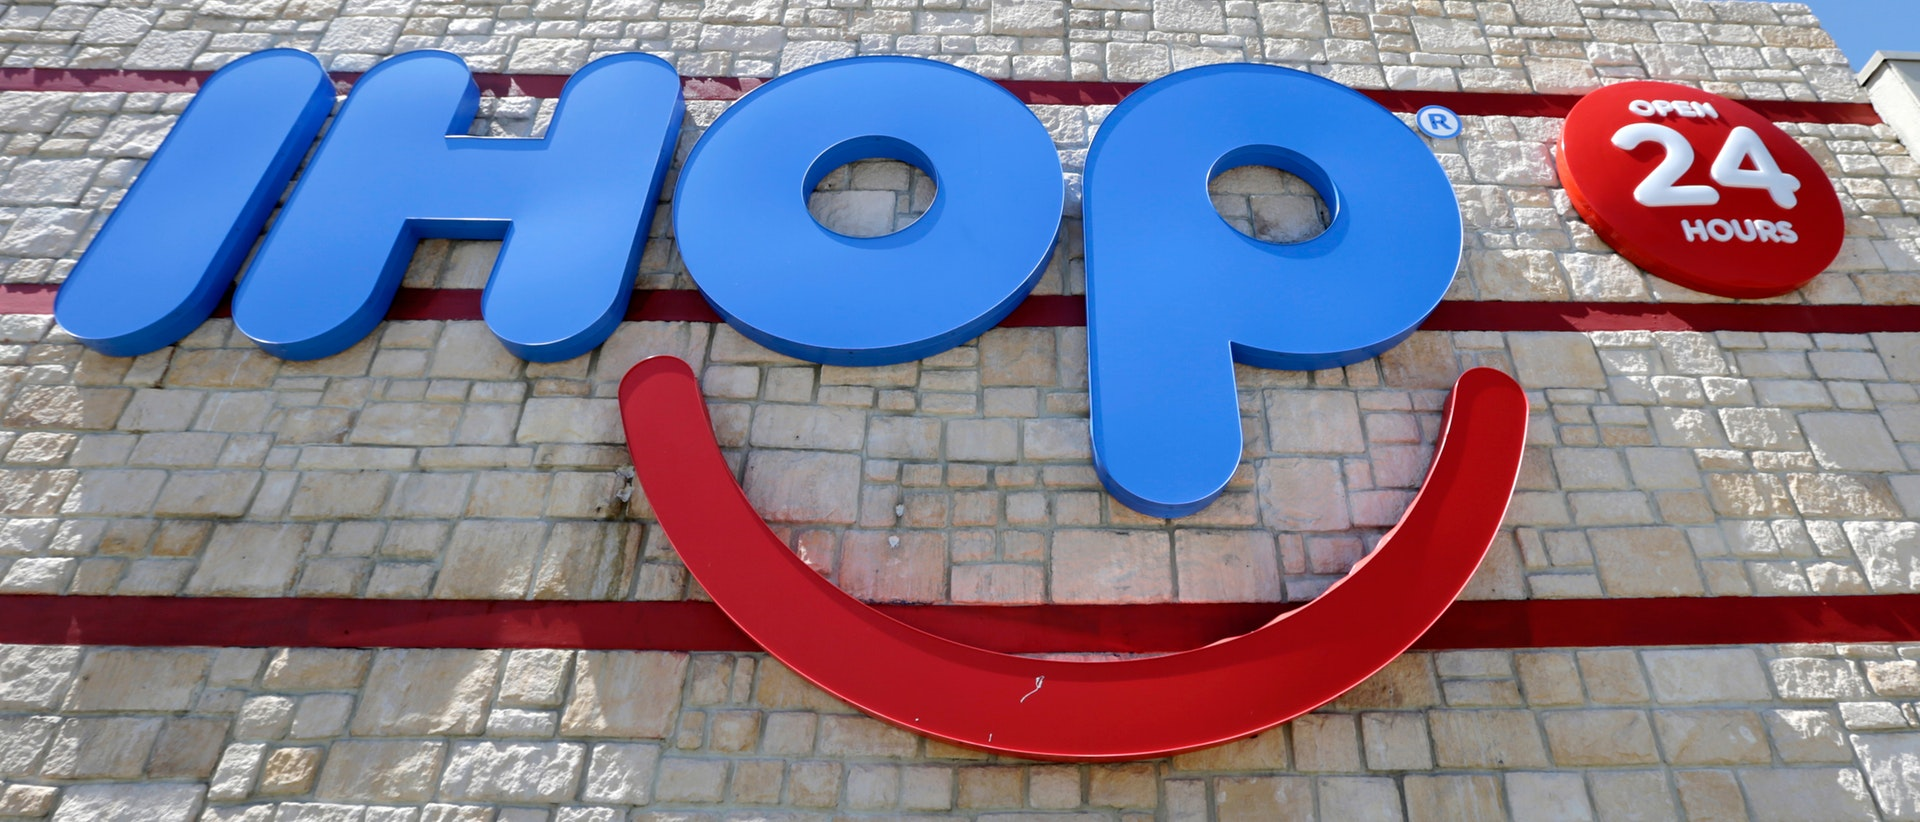 You can eat tiny pancakes in this tiny IHOP starting this winter